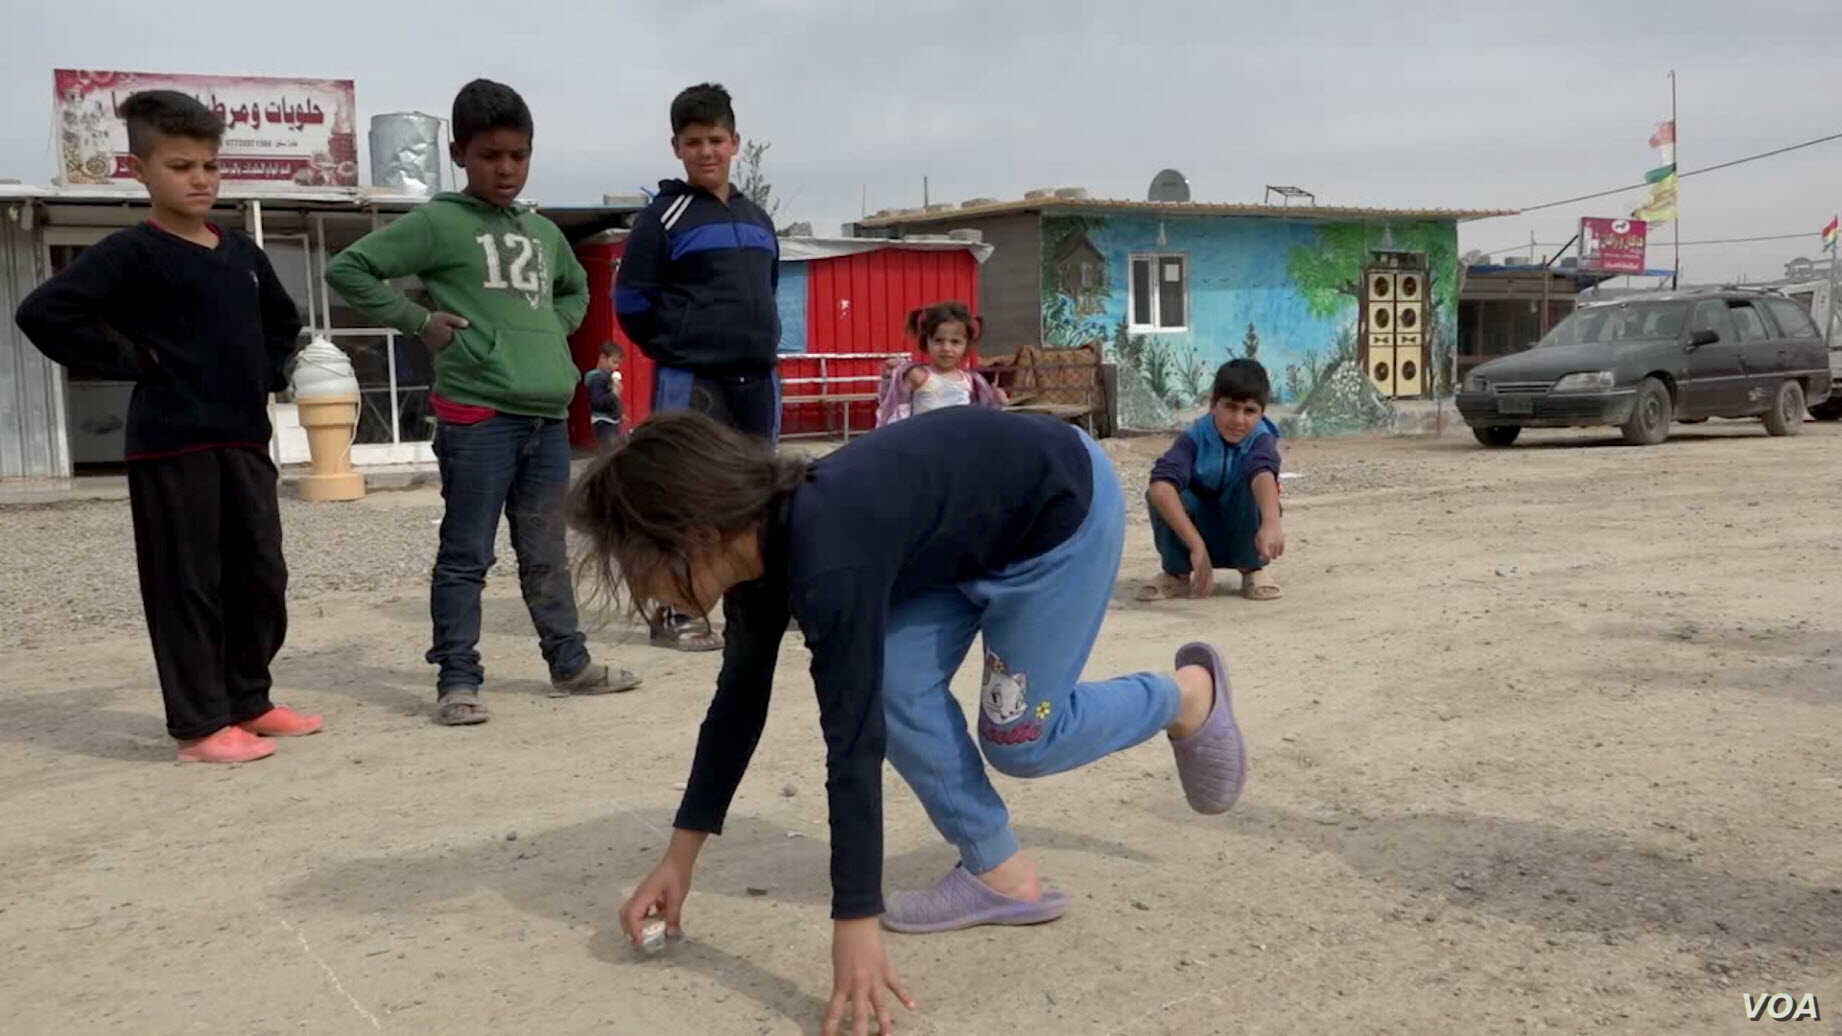 Children play in the dirt road of a Domiz, Iraq, refugee camp (VOA).